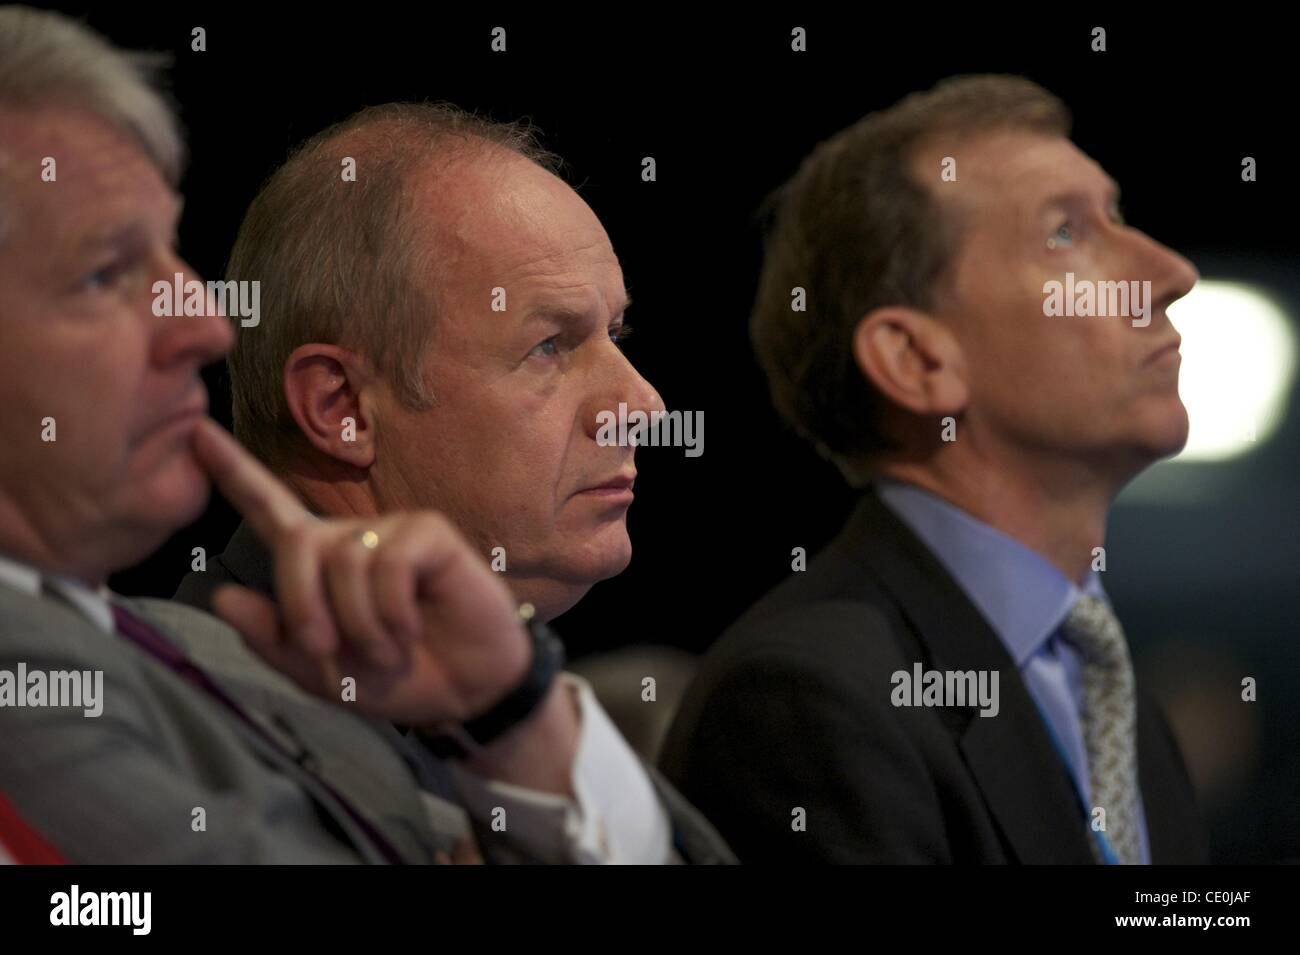 Oct. 4, 2011 - Manchester, England, UK - Minister of State of Immigration DAMIAN GREEN listens to speeches during - Stock Image